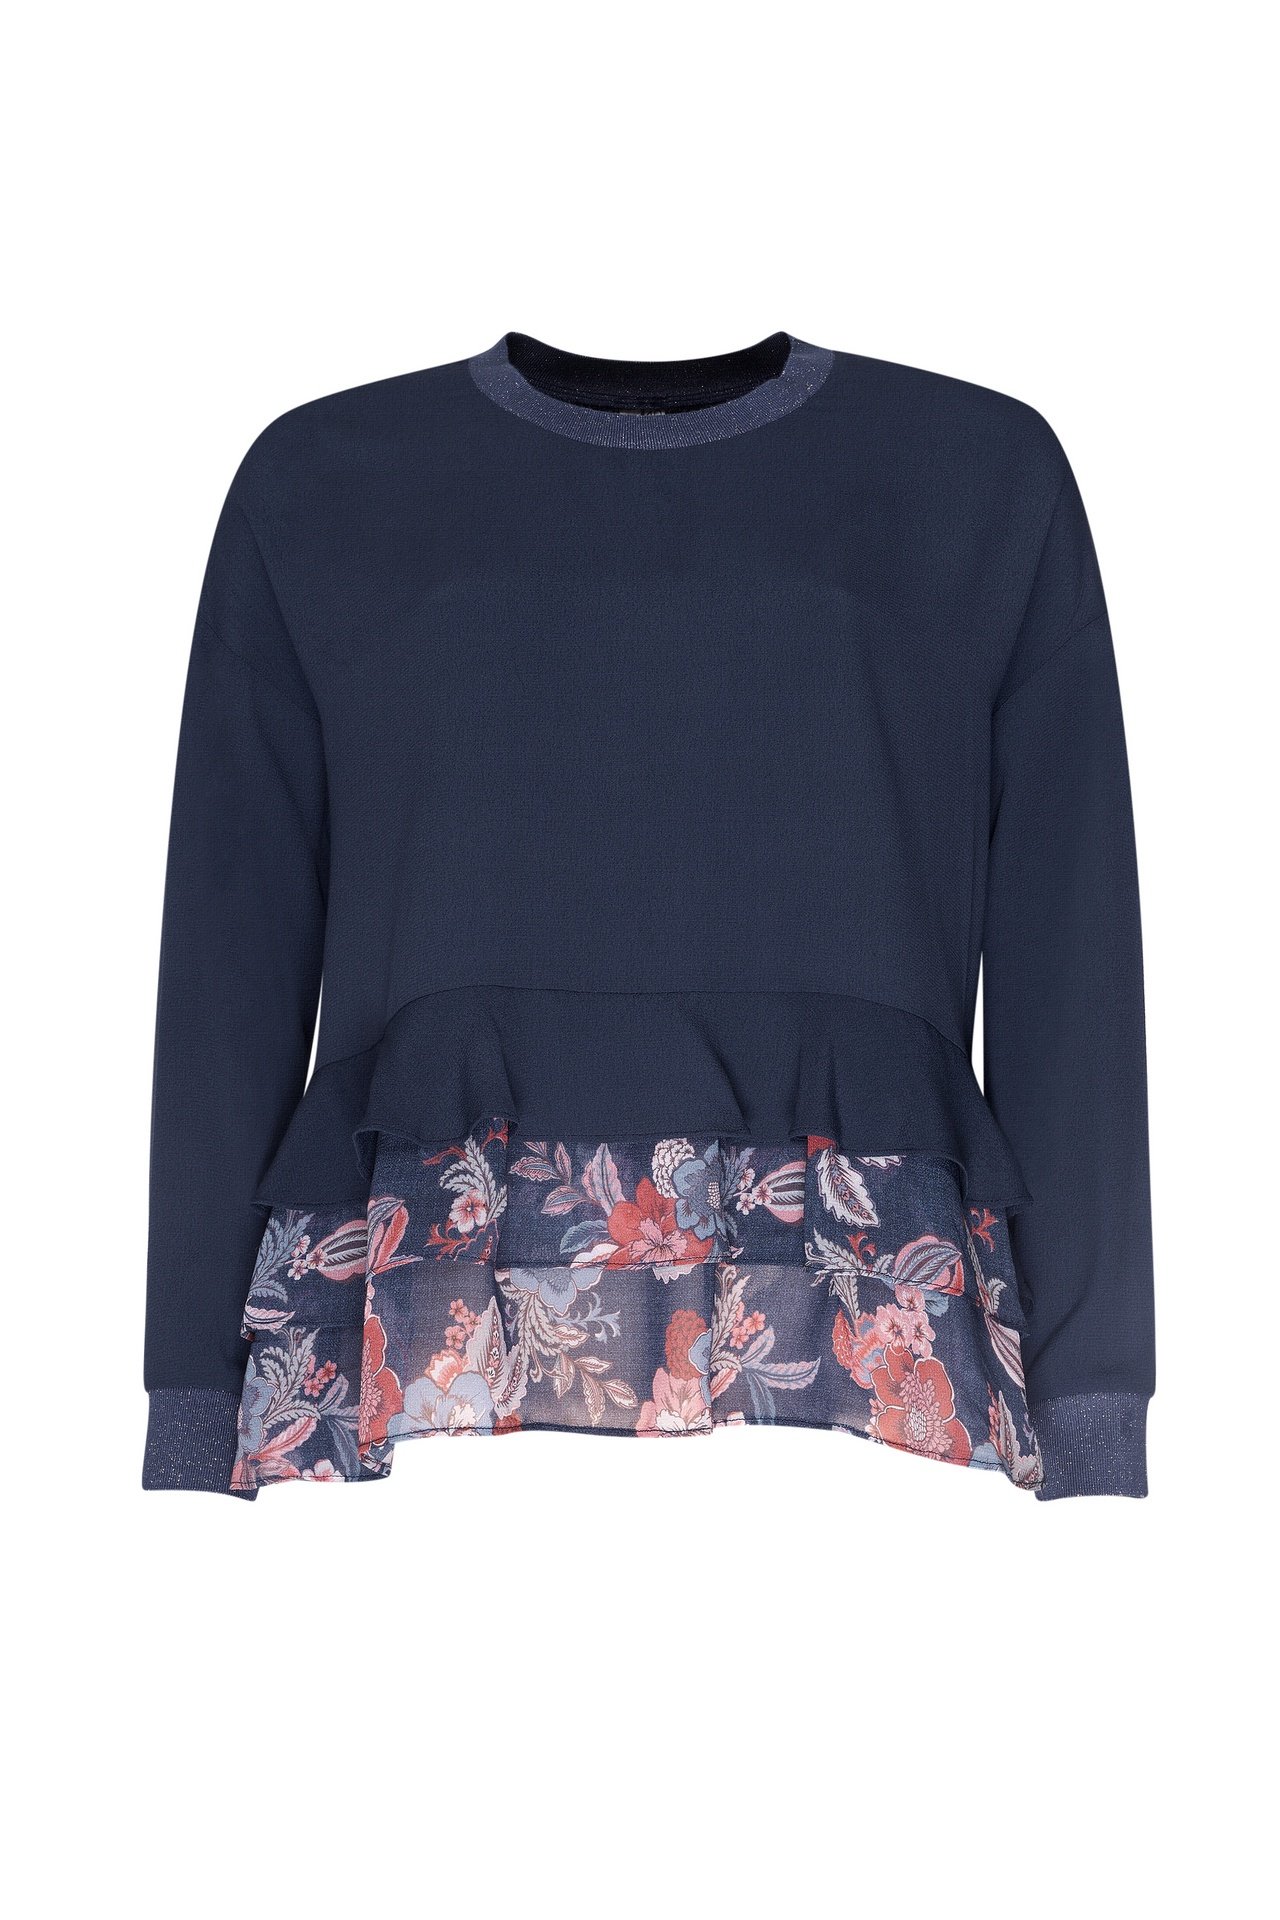 LS1307 Tapestry Frill Top